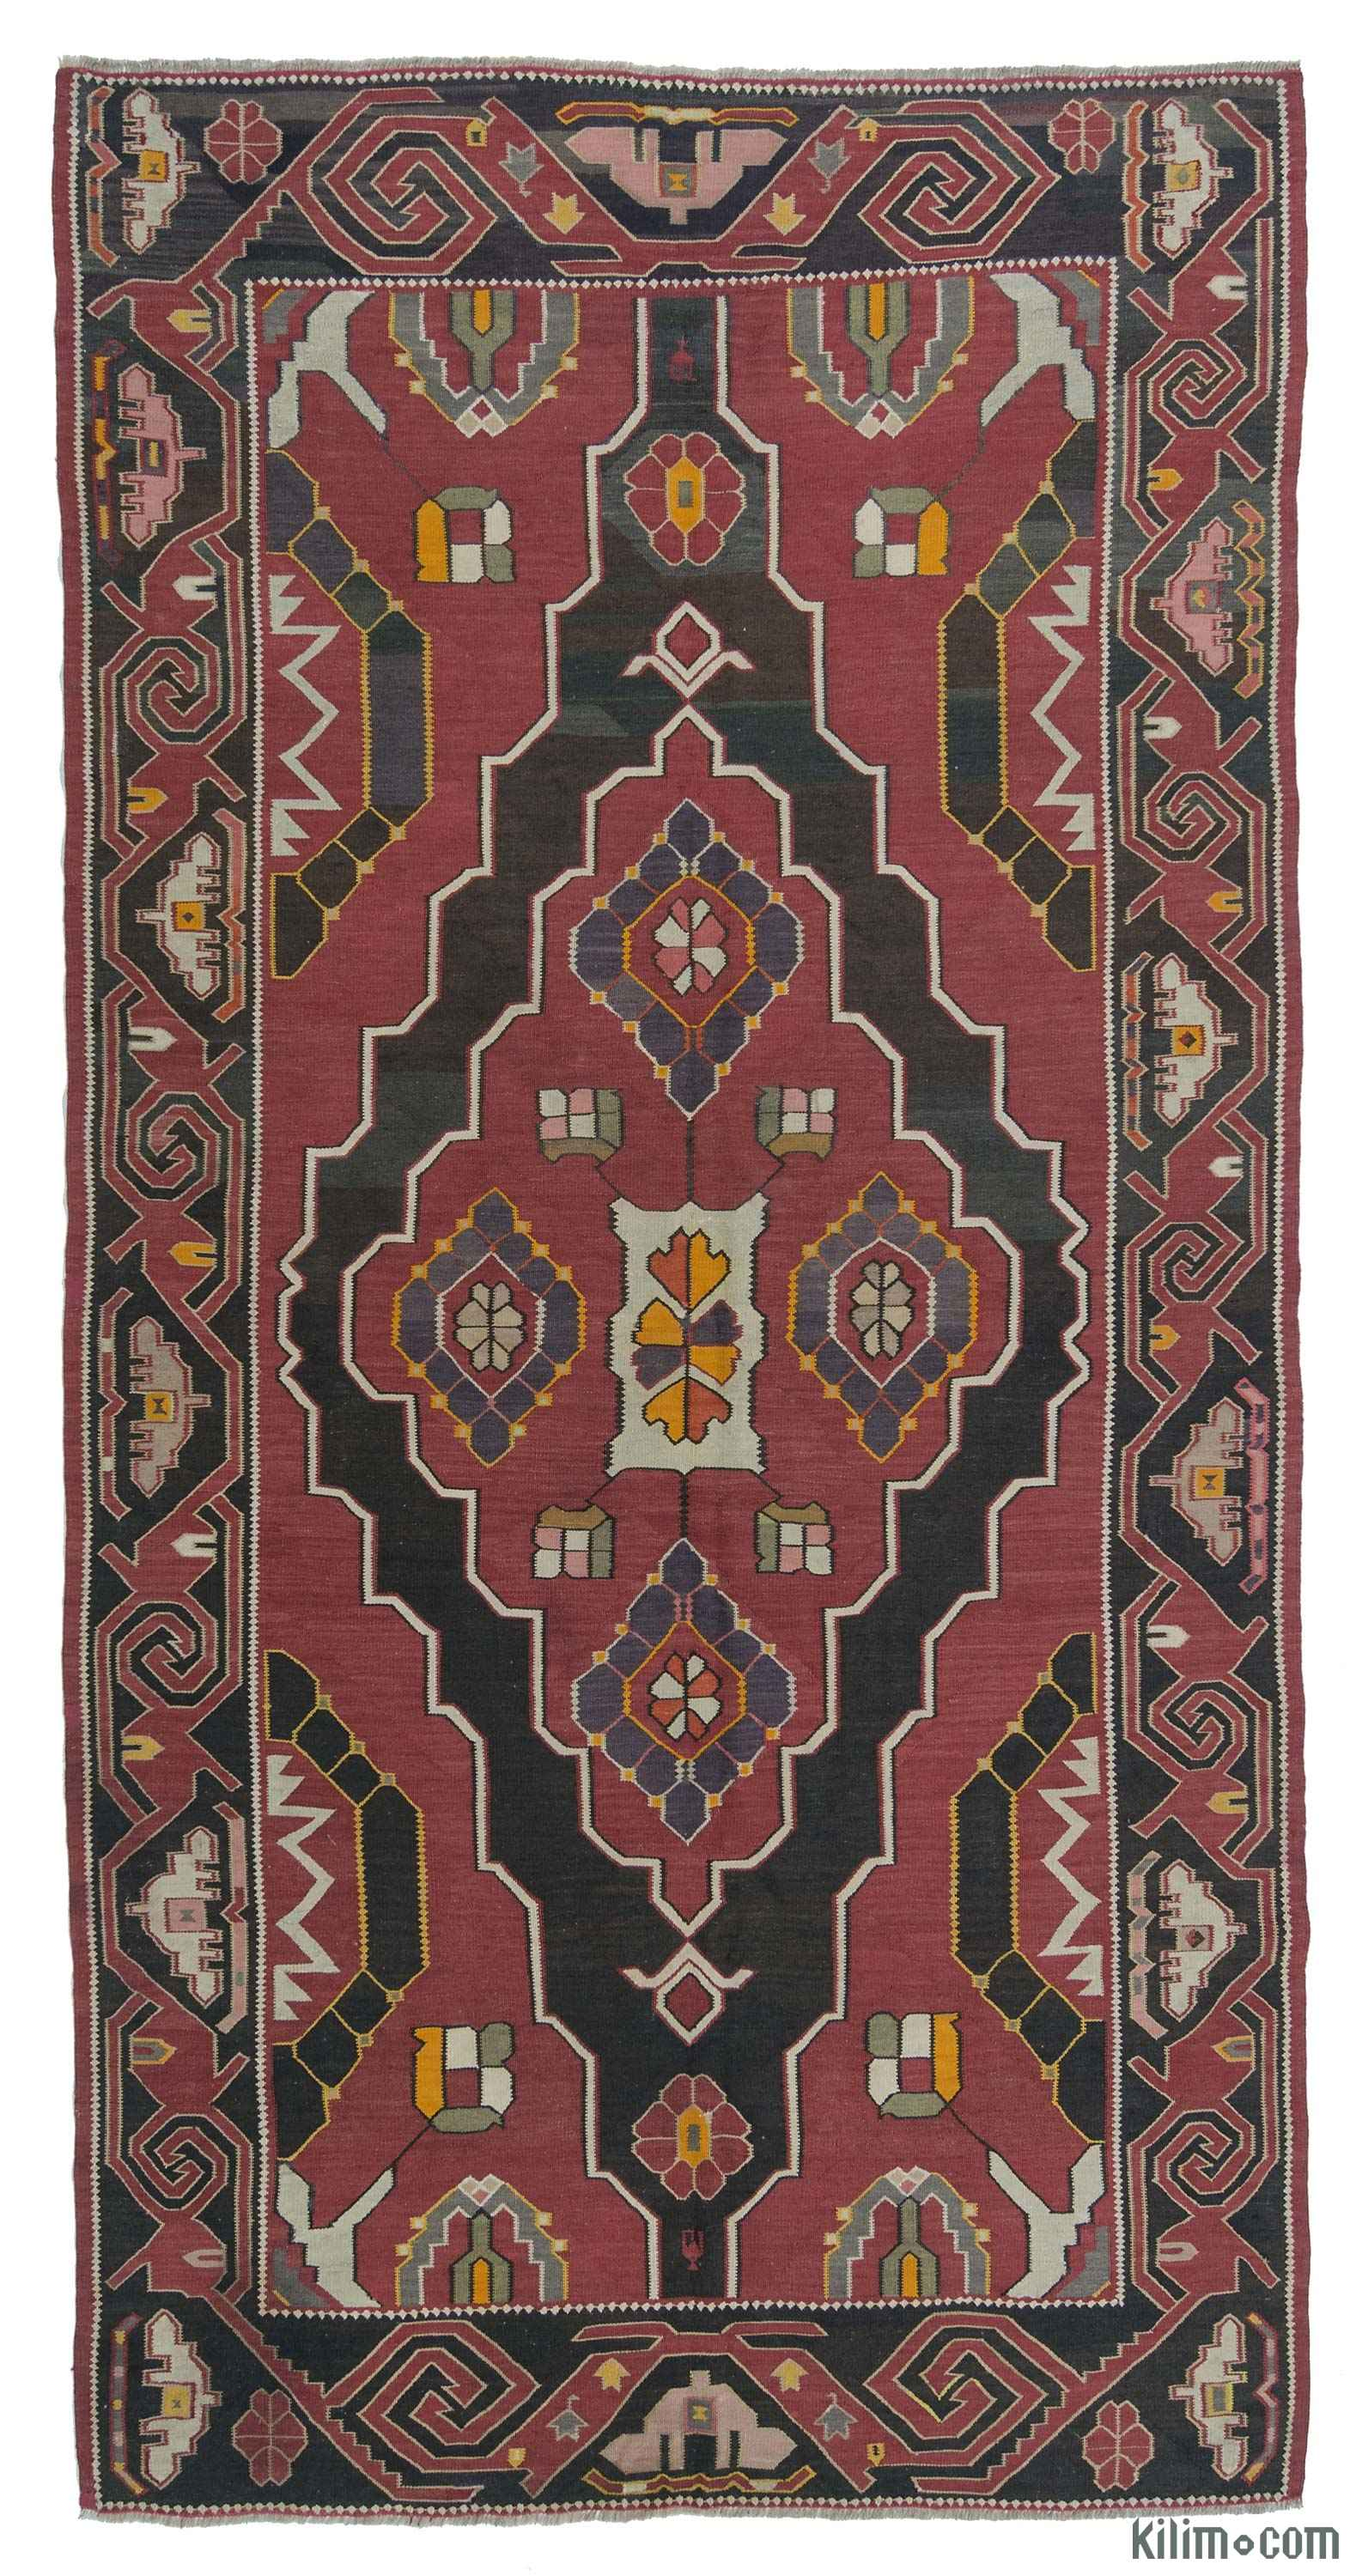 Rugs And Kilims Are The Master Elements Of Bohemian Style: K0013266 Red Vintage Avar Kilim Rug